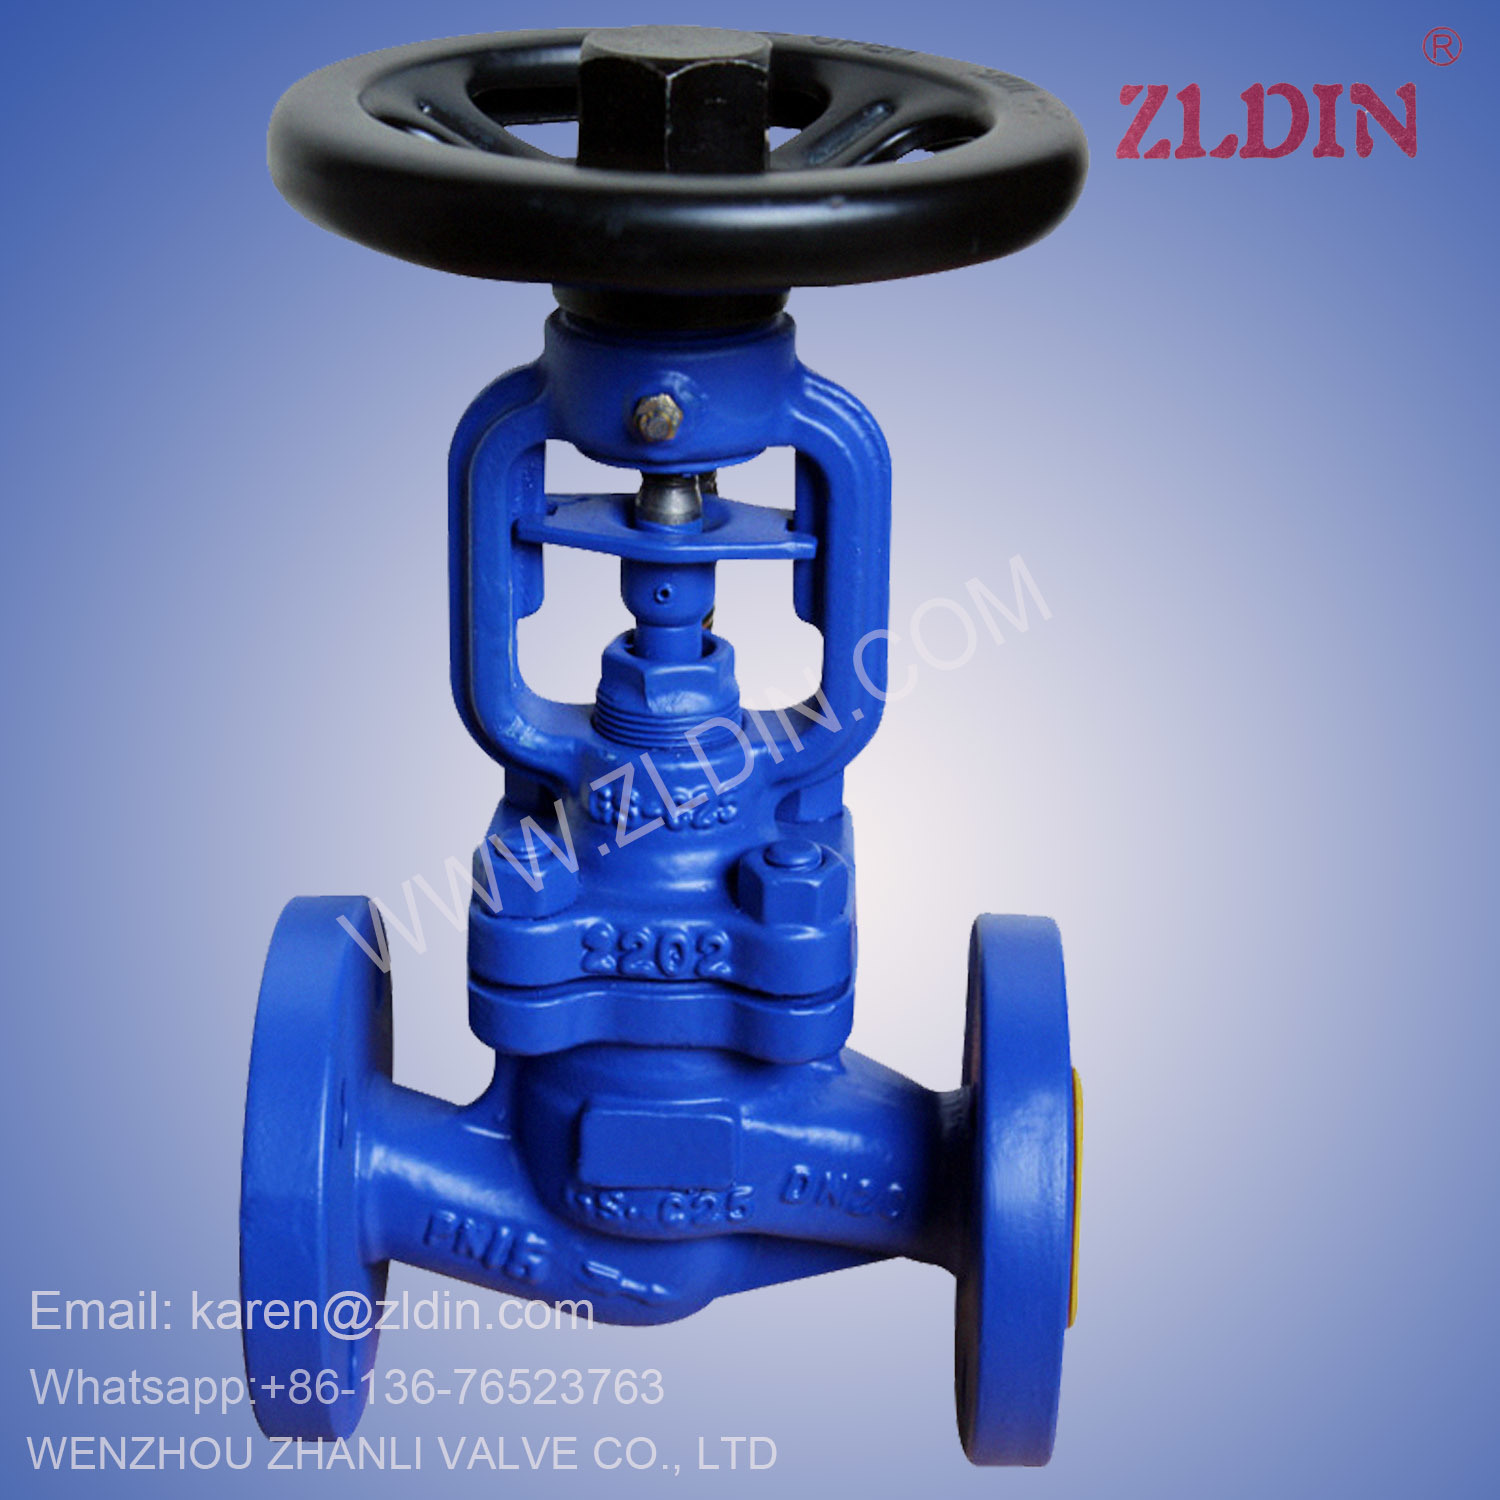 DIN Std. Pn100 Wj41h GS-C25 Bellows Globe Valve for Cryogenic System Wenzhou Valve